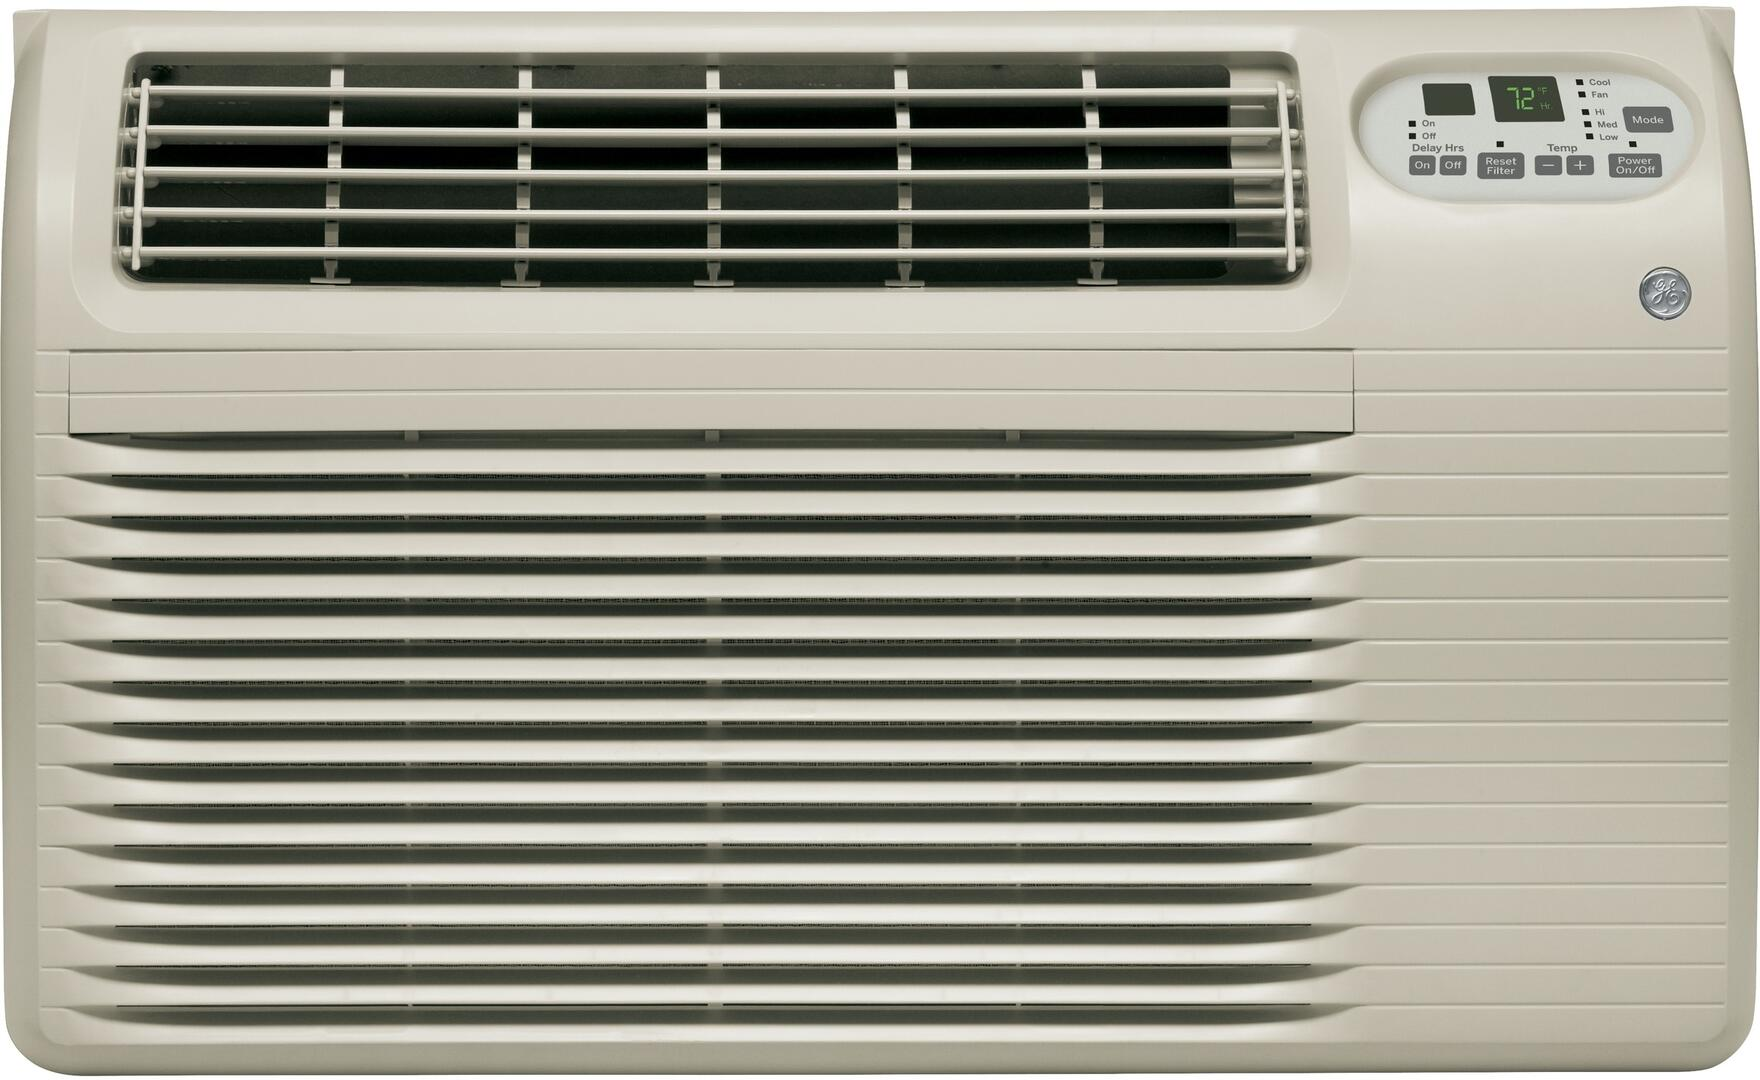 Hotel Air Conditioners For Sale Top Air Conditioning Products Home Heating Appliances Connection